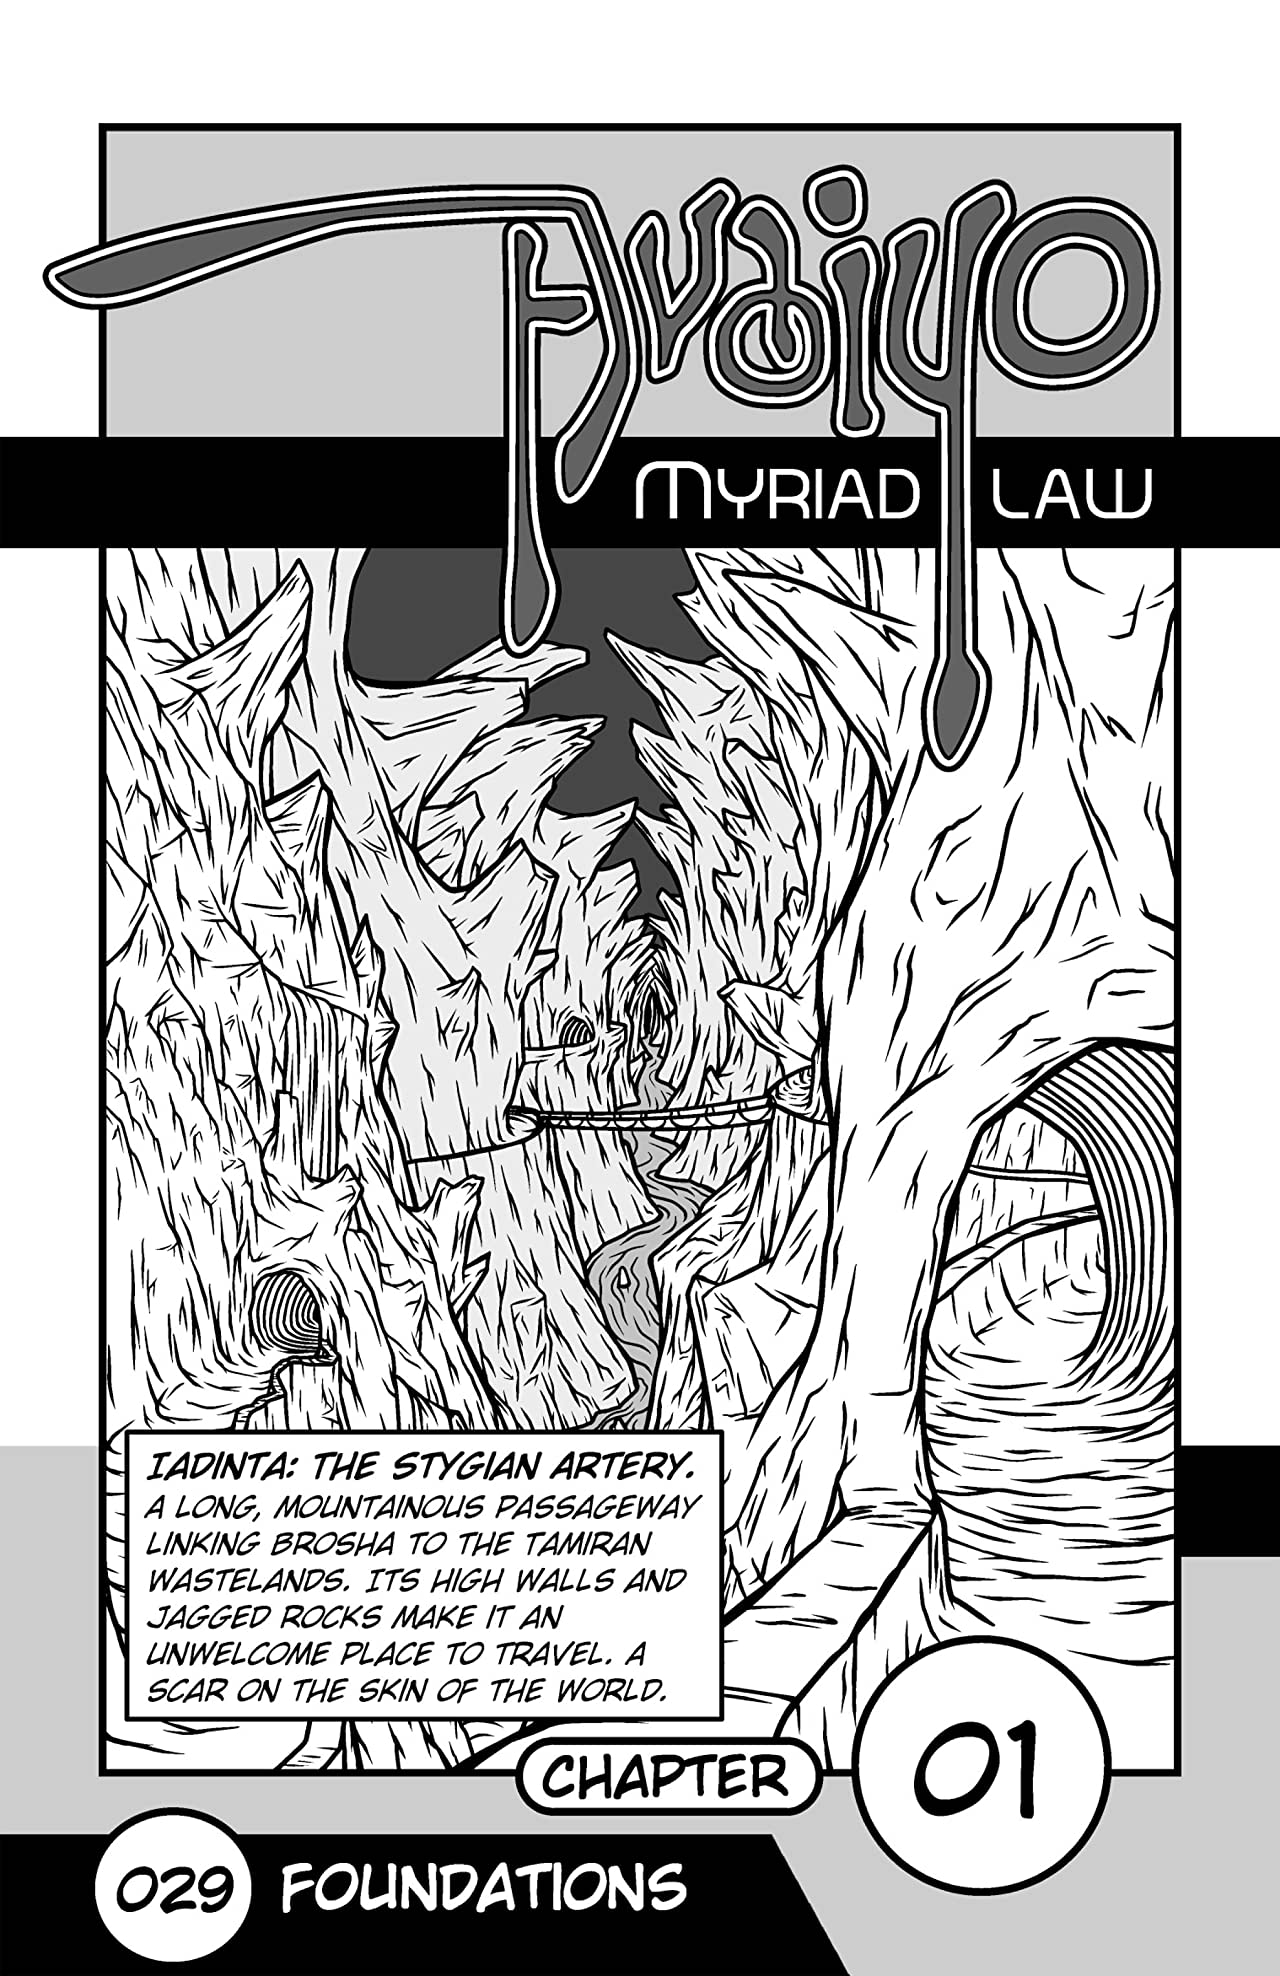 Avaiyo: Myriad Law Vol. 03